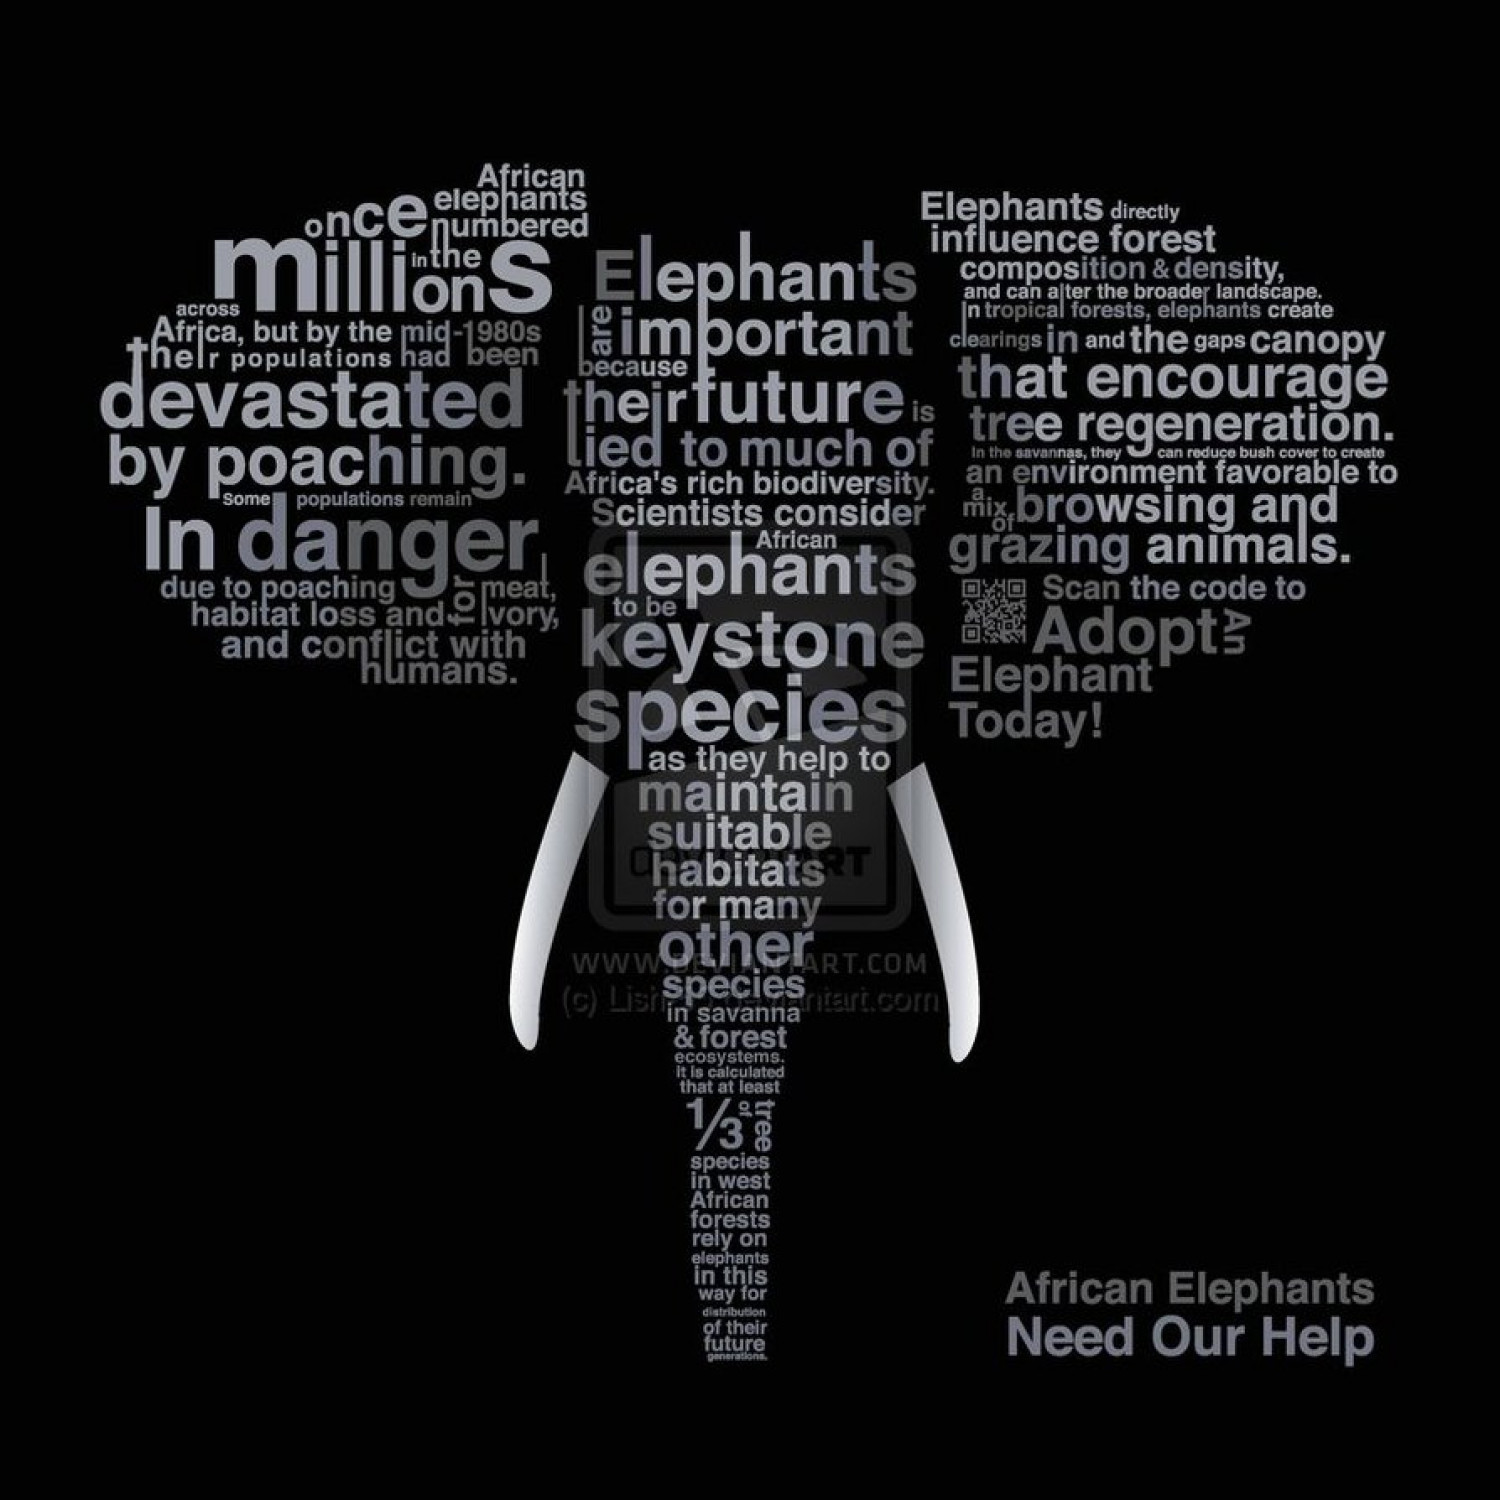 African elephants need our help Infographic